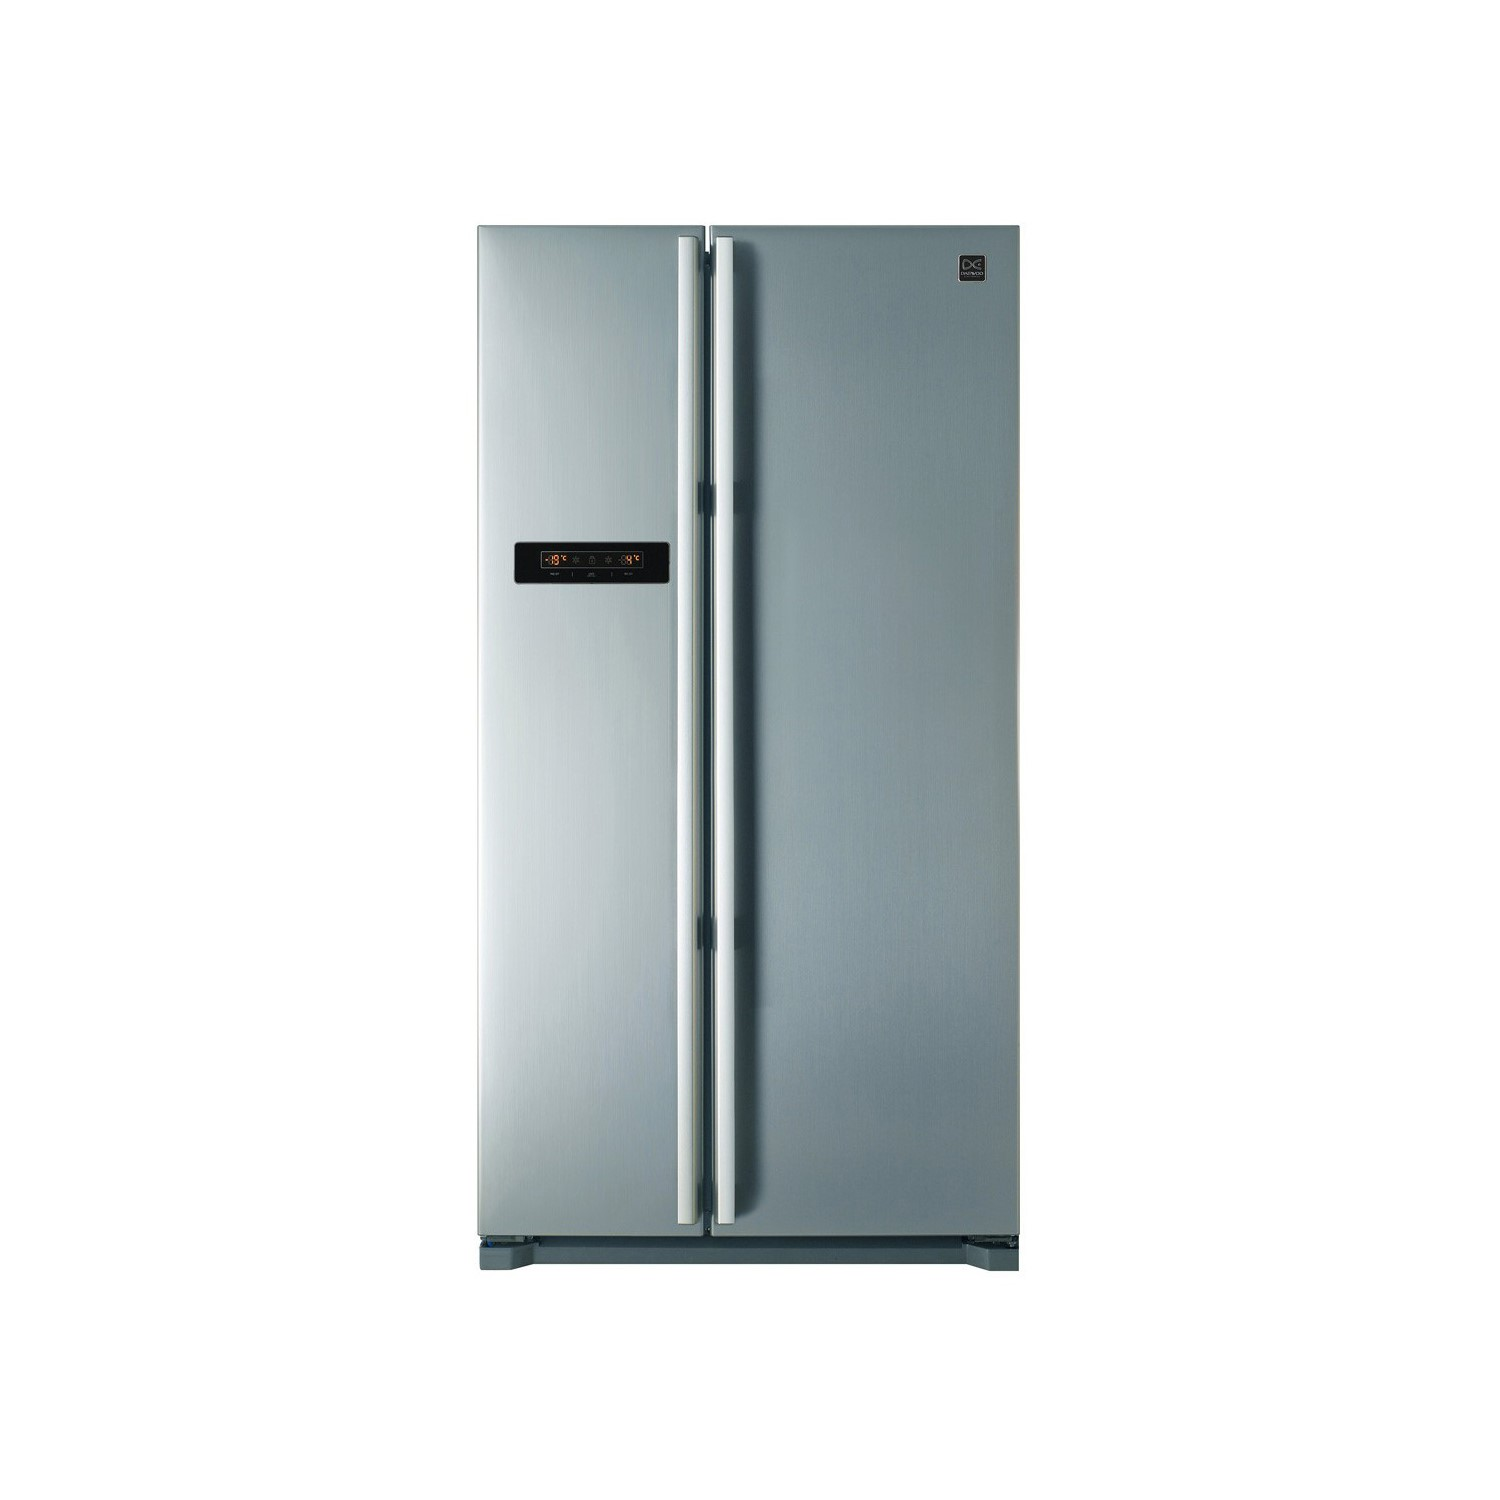 American Side By Side Fridge Freezer Part - 29: Daewoo FRAX22B3S Side-by-side American Fridge Freezer With LED Display  Silver